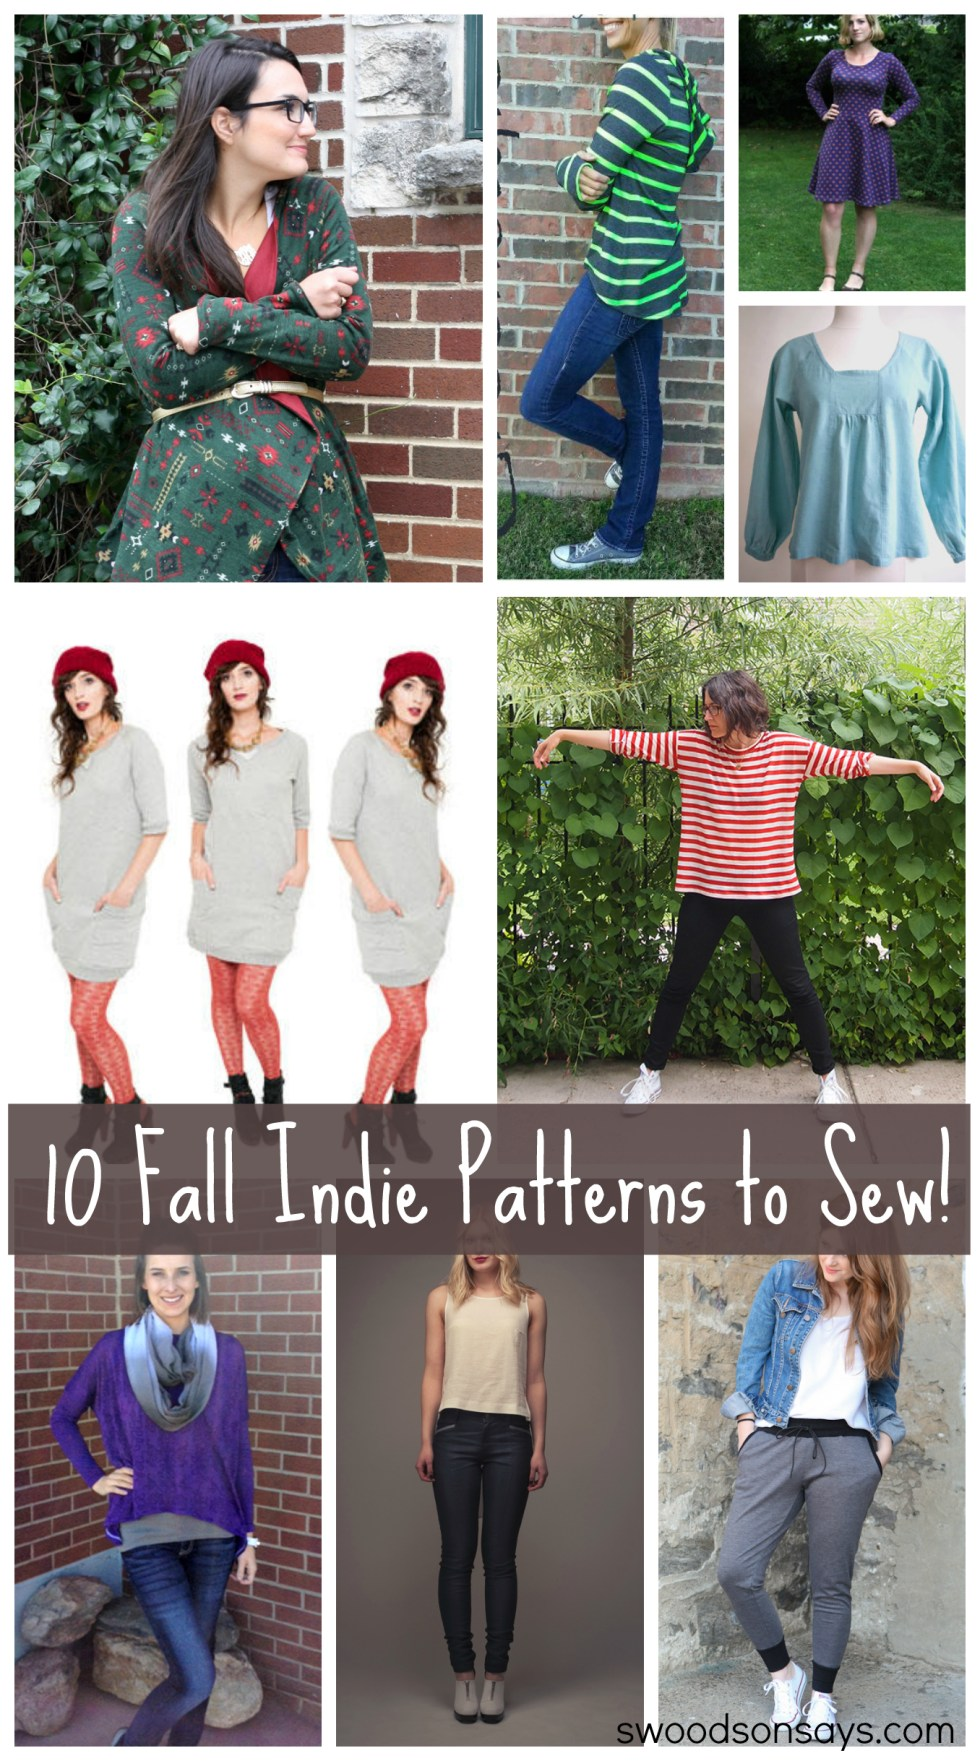 10 Indie Patterns to Sew for Fall